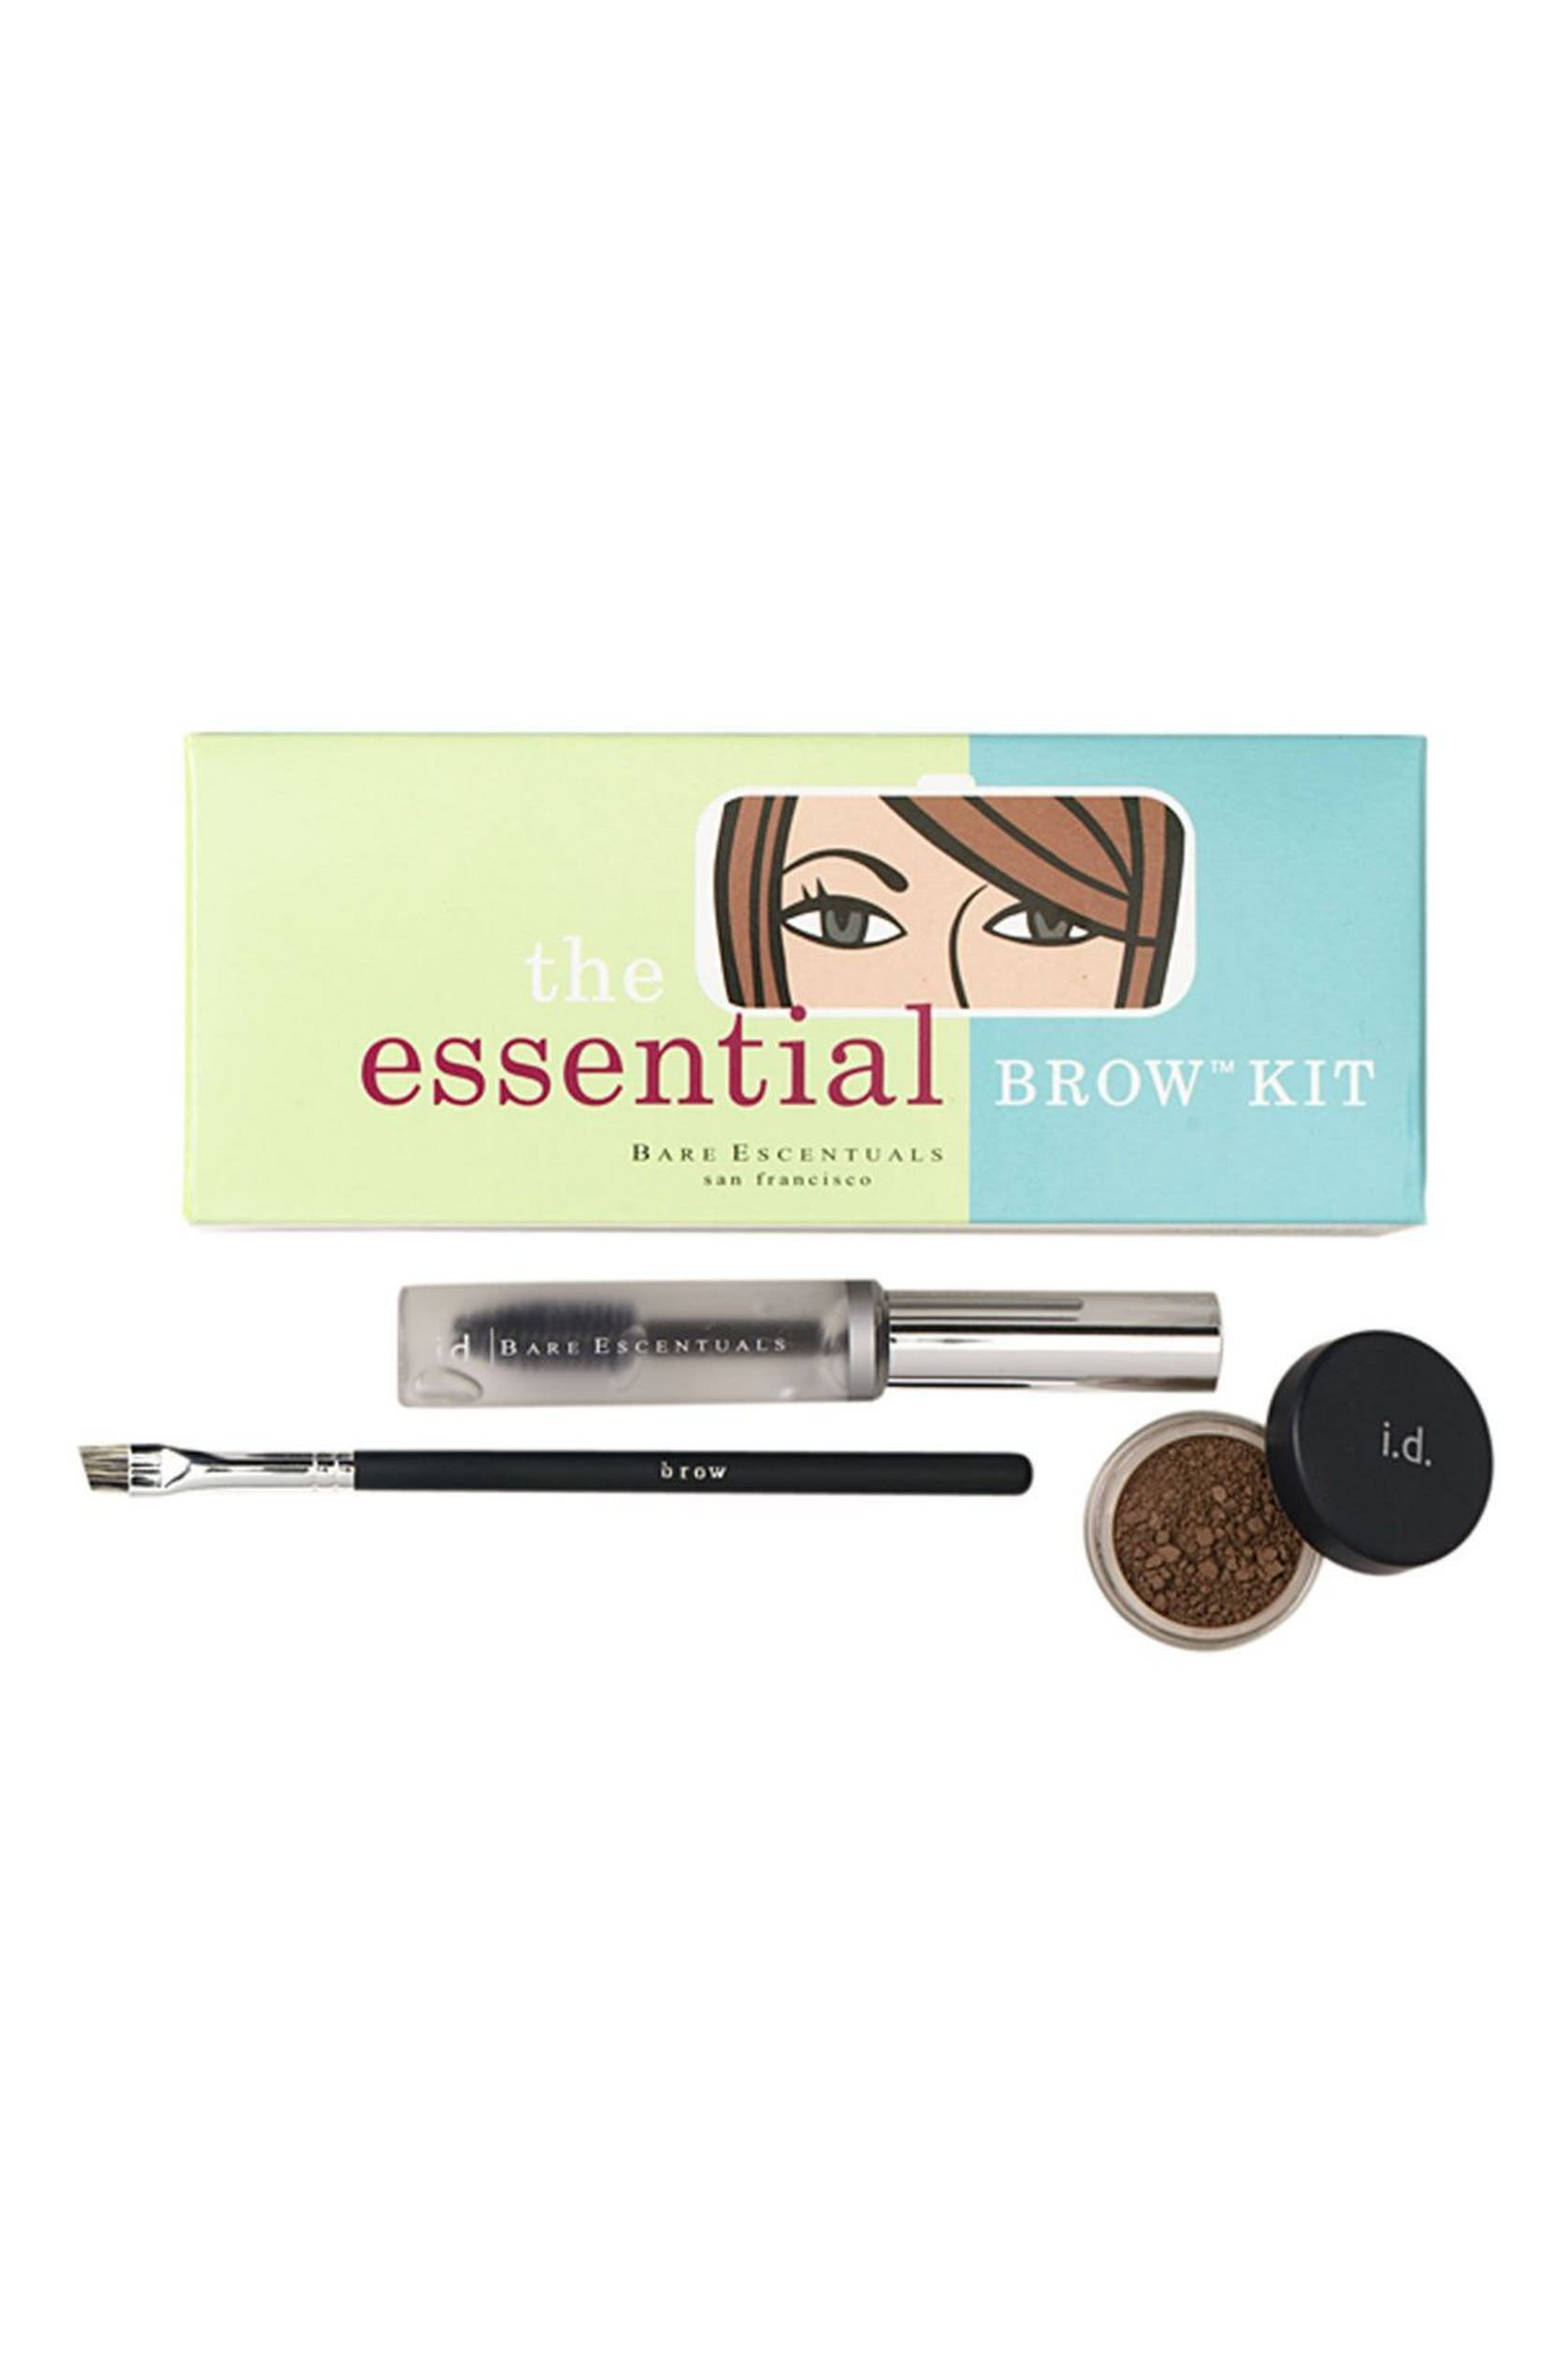 Bareminerals The Essential Brow Kit Nordstrom